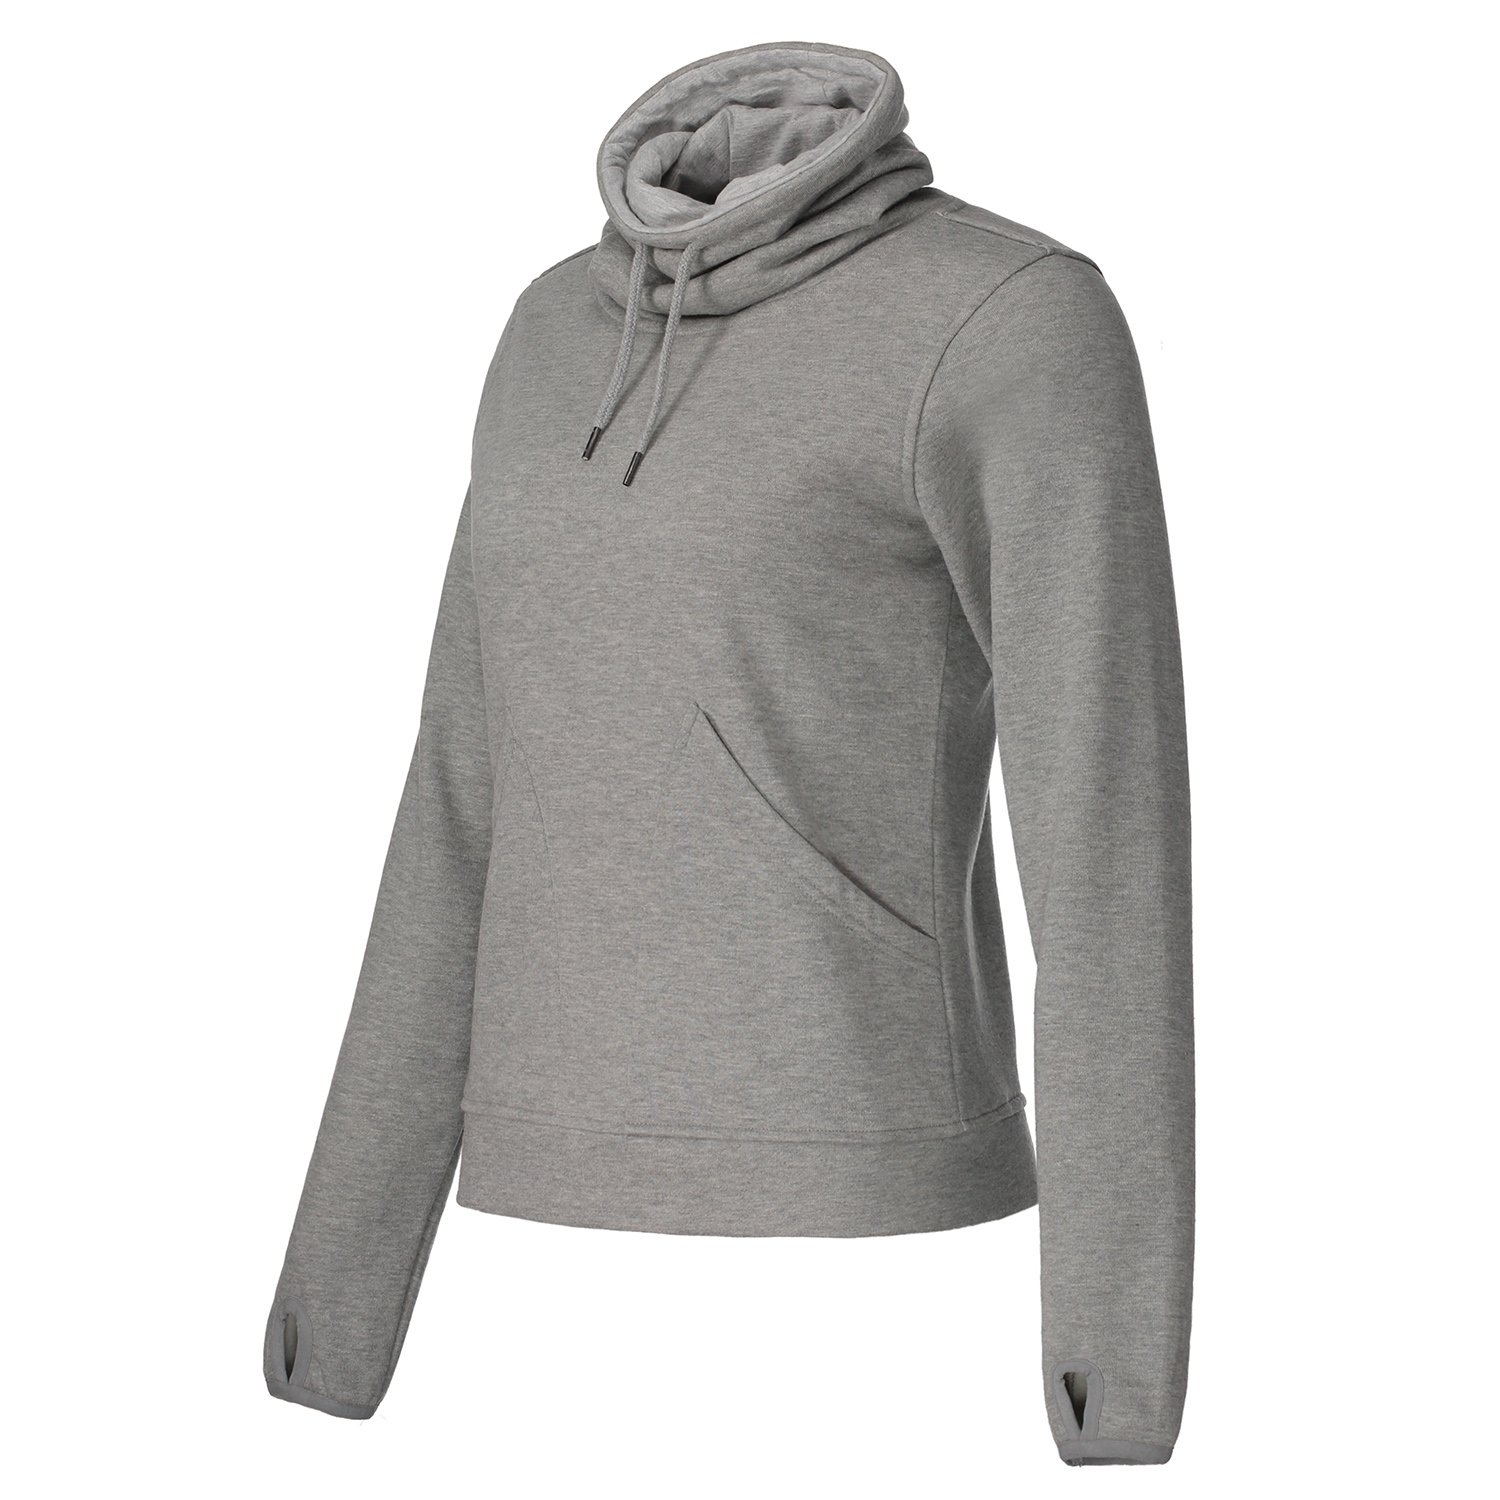 Helzkor Women's Long Sleeve Fleece Lined Pullover Cowl Neck Casual Sweatshirt With Thumbholes and Pockets